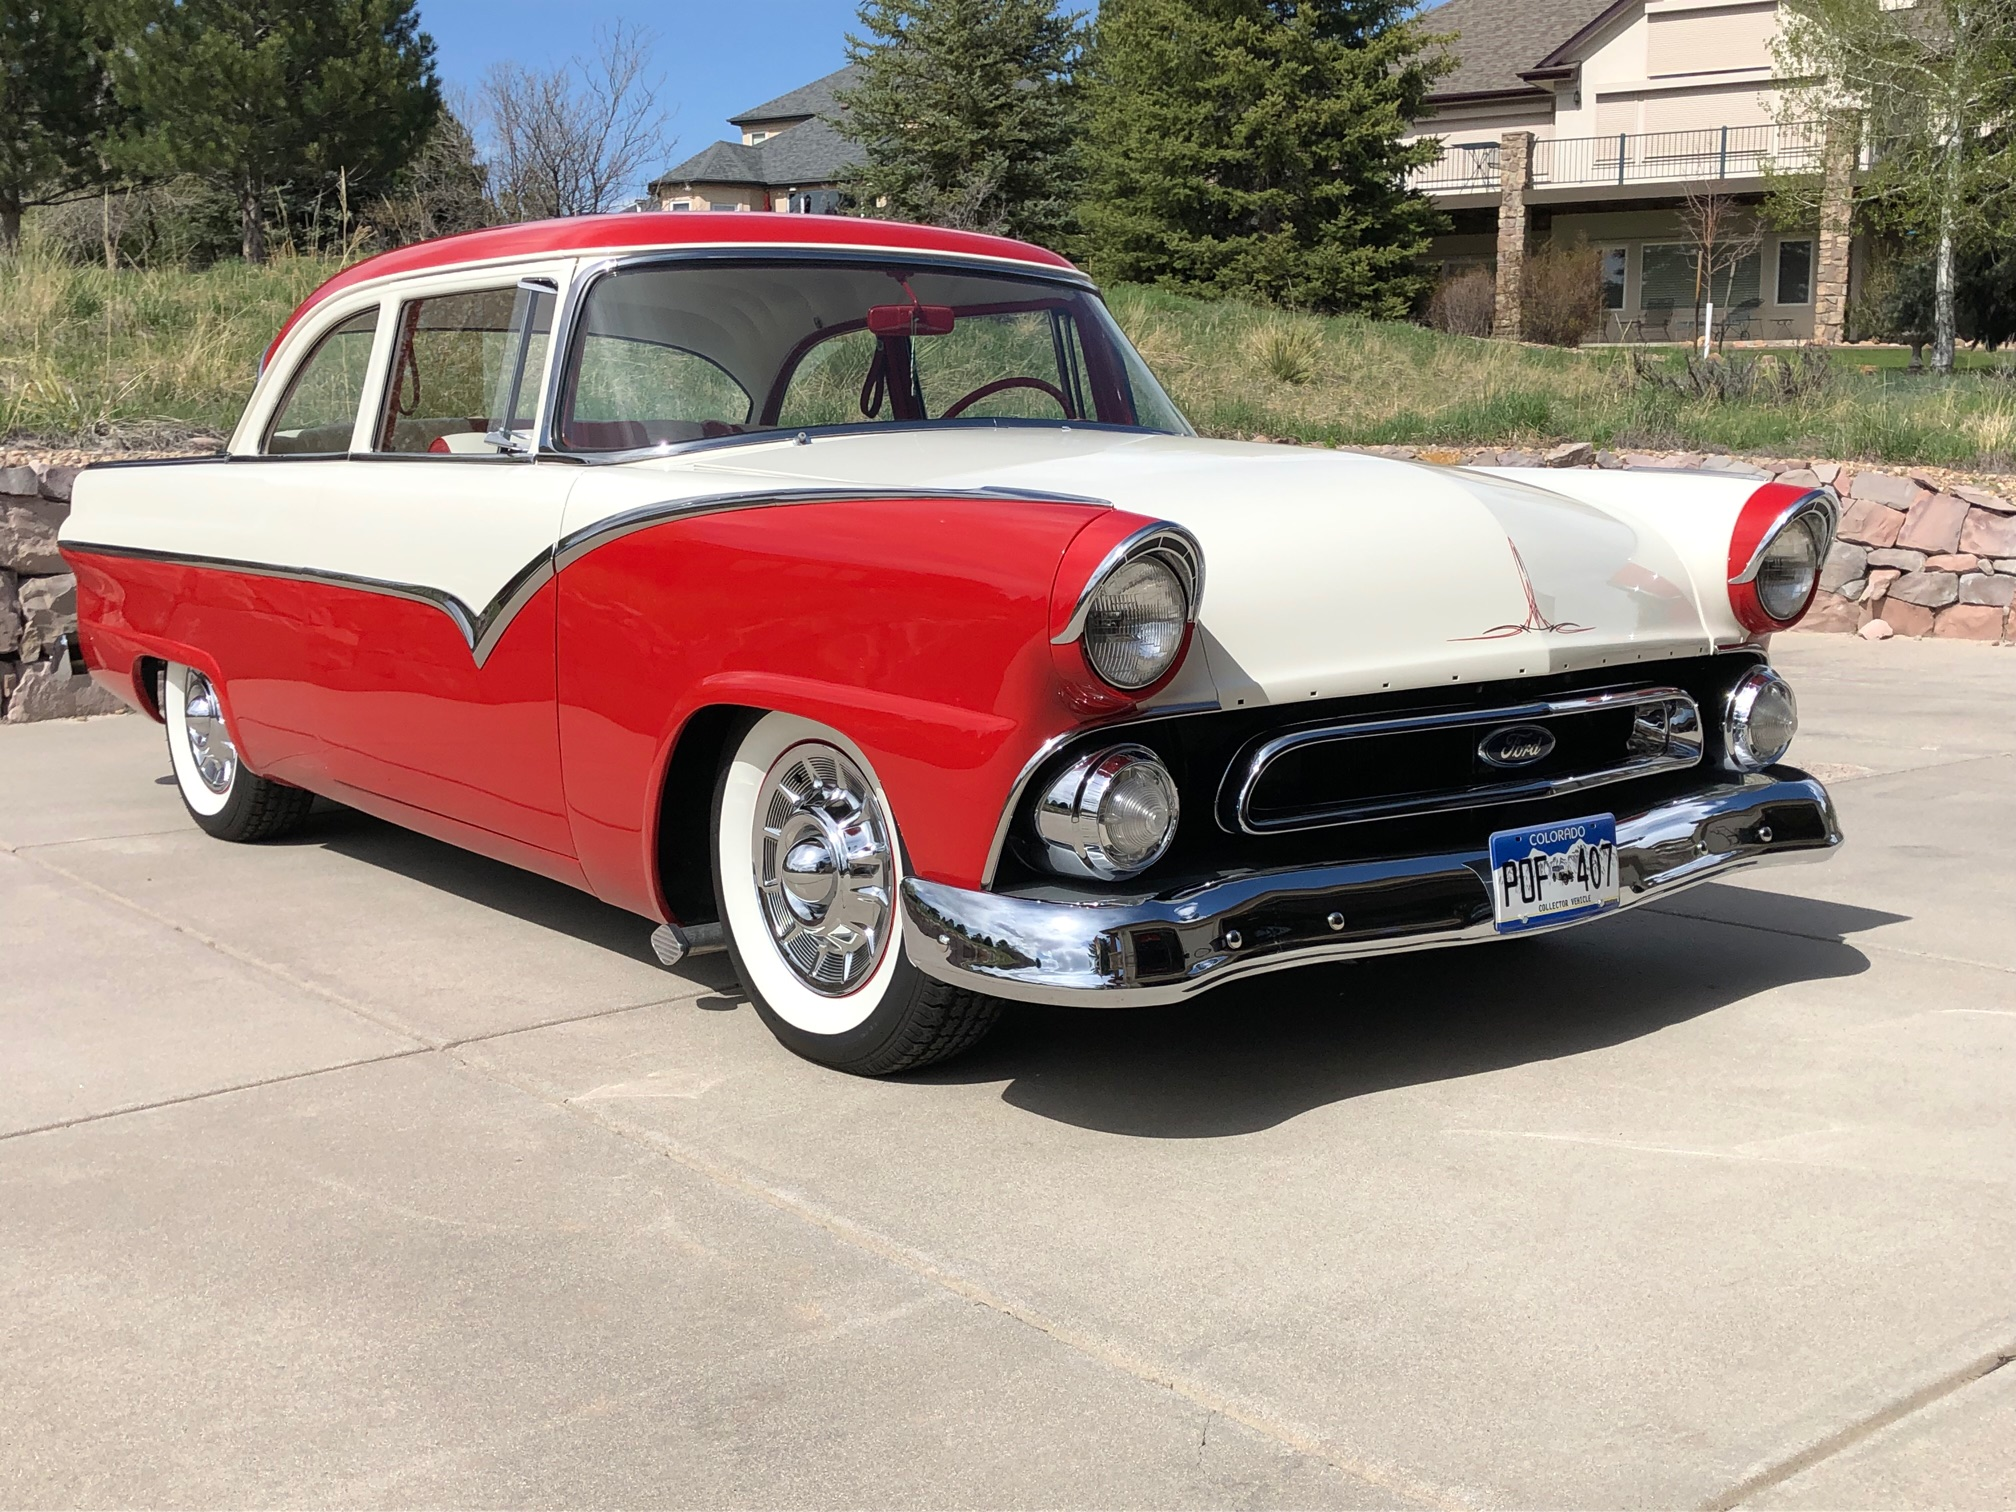 Malinowski loves automobiles and recently completed a project to rebuild a 1955 Ford.